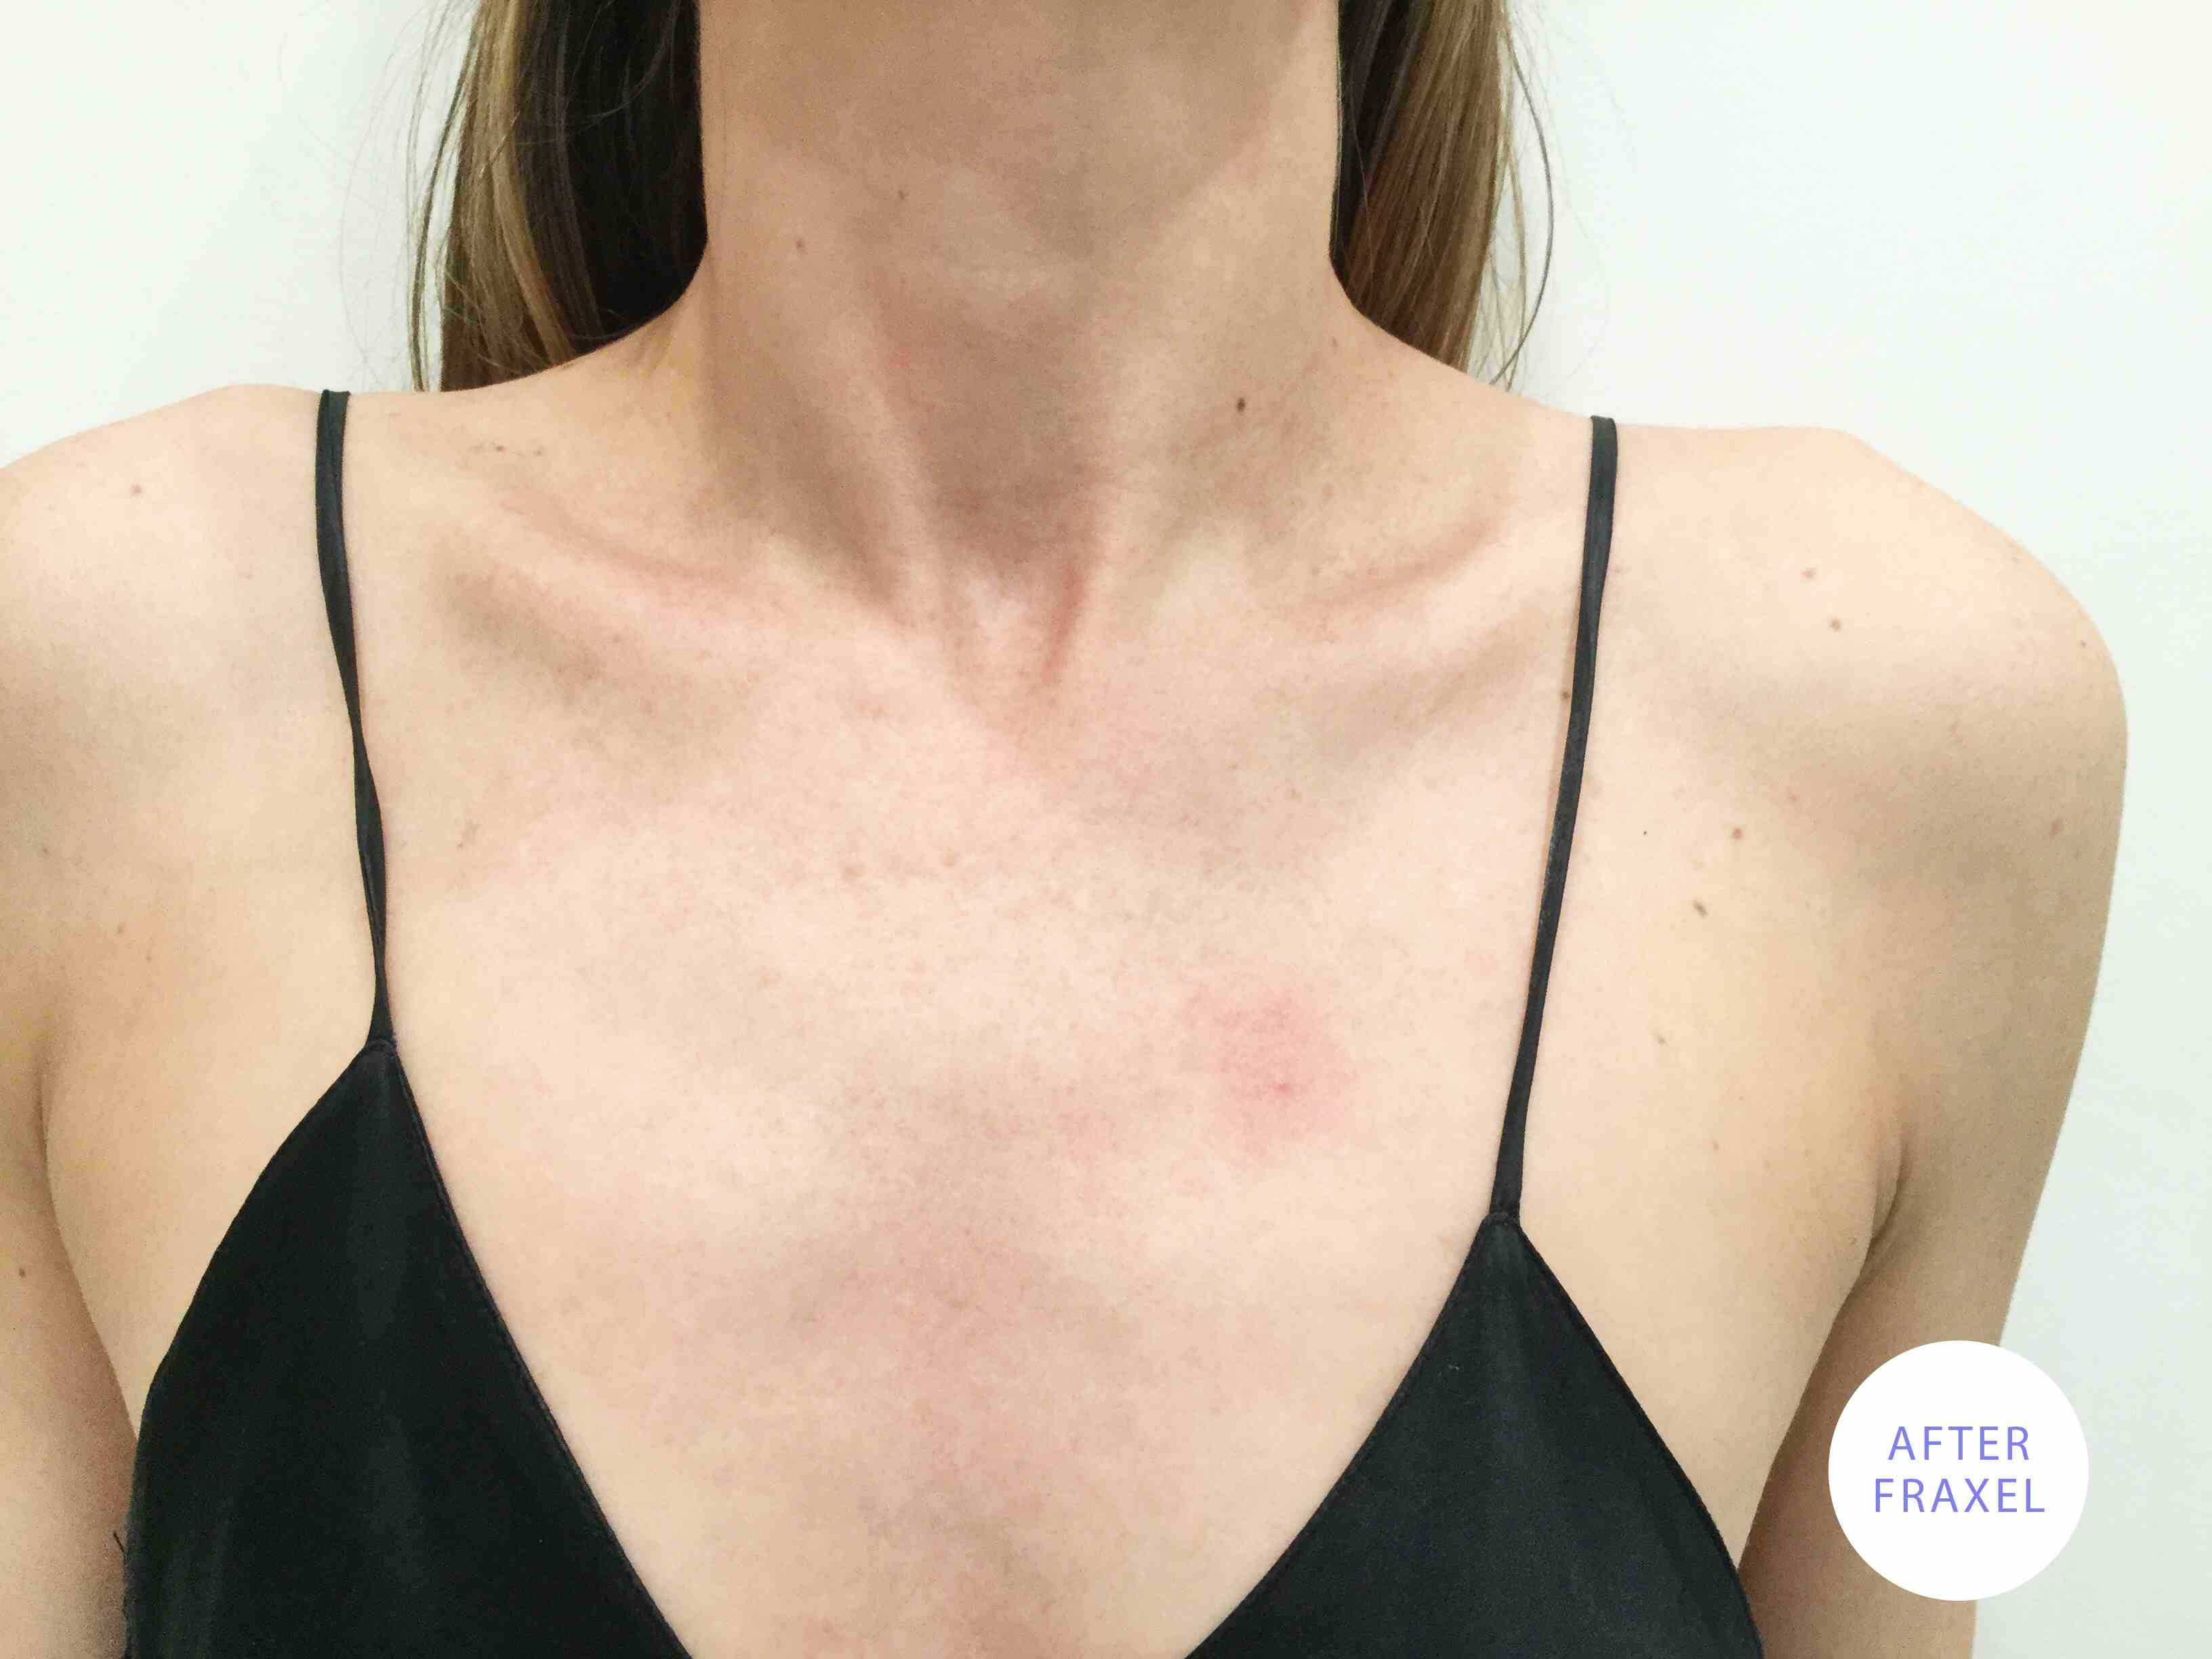 After a Fraxel treatment on the chest